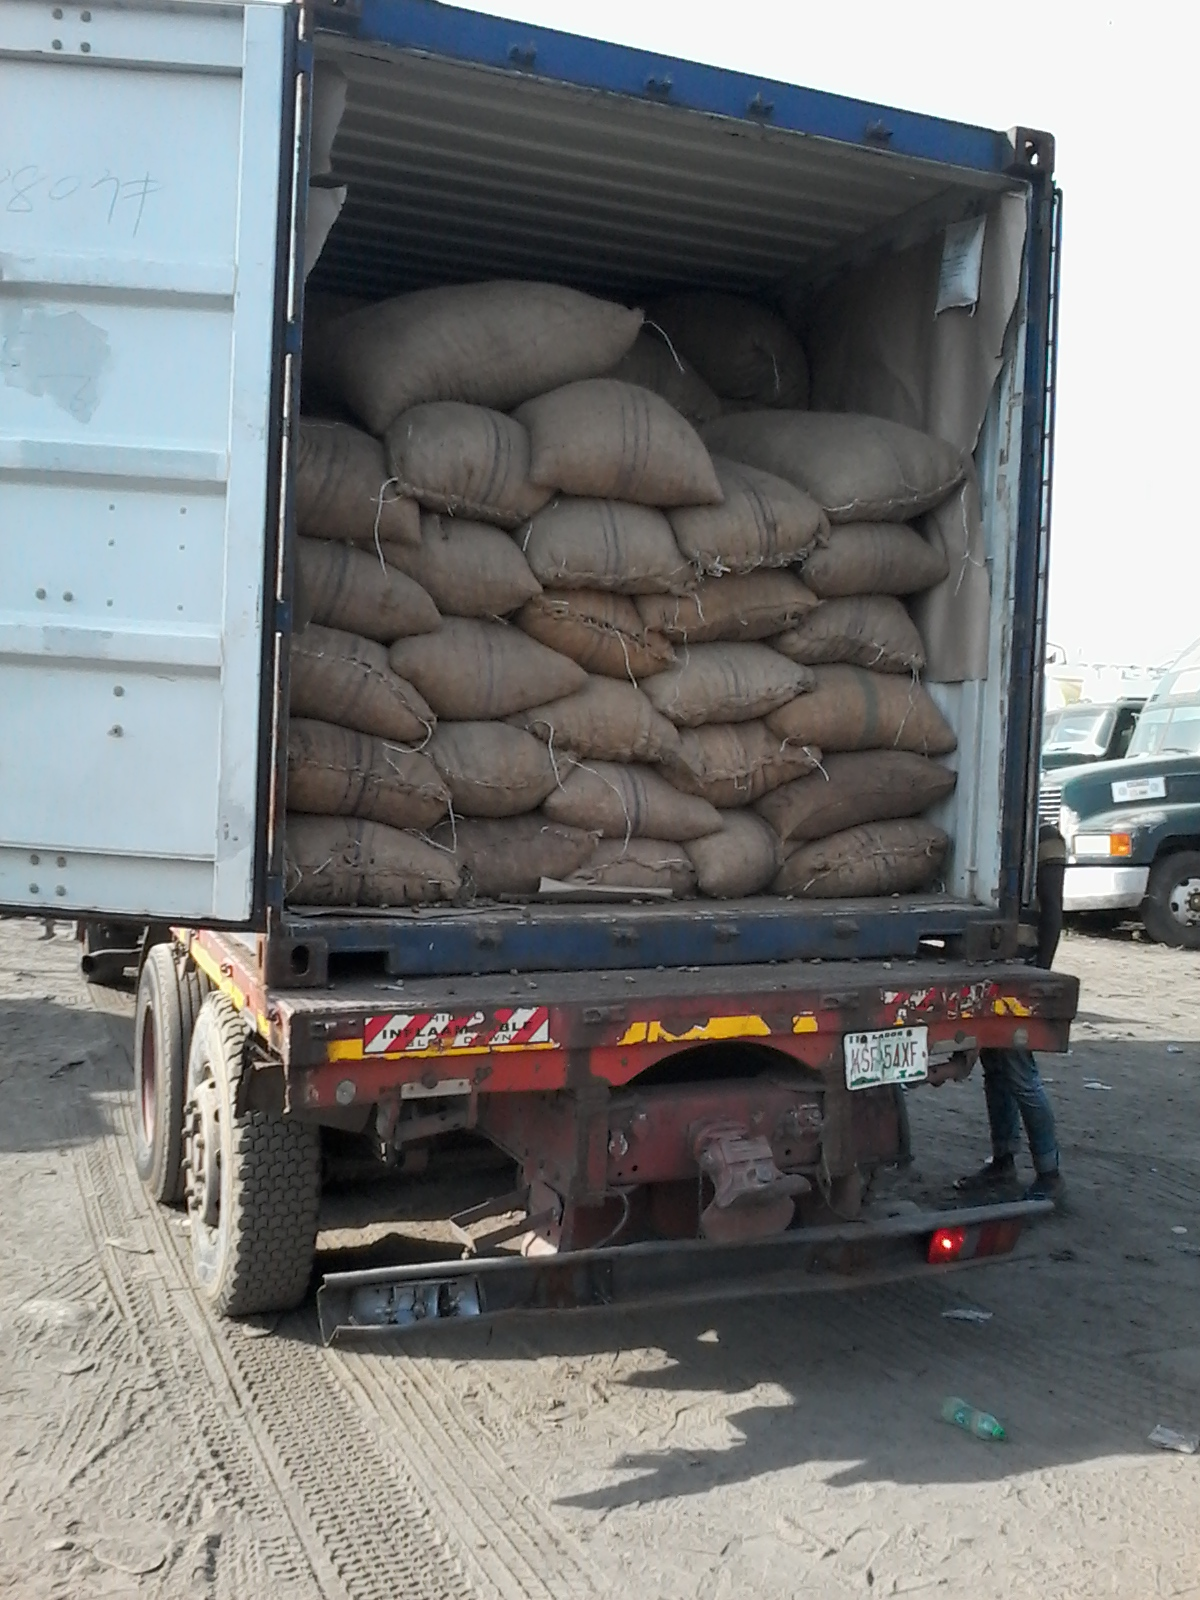 Bags of Cashew Nuts